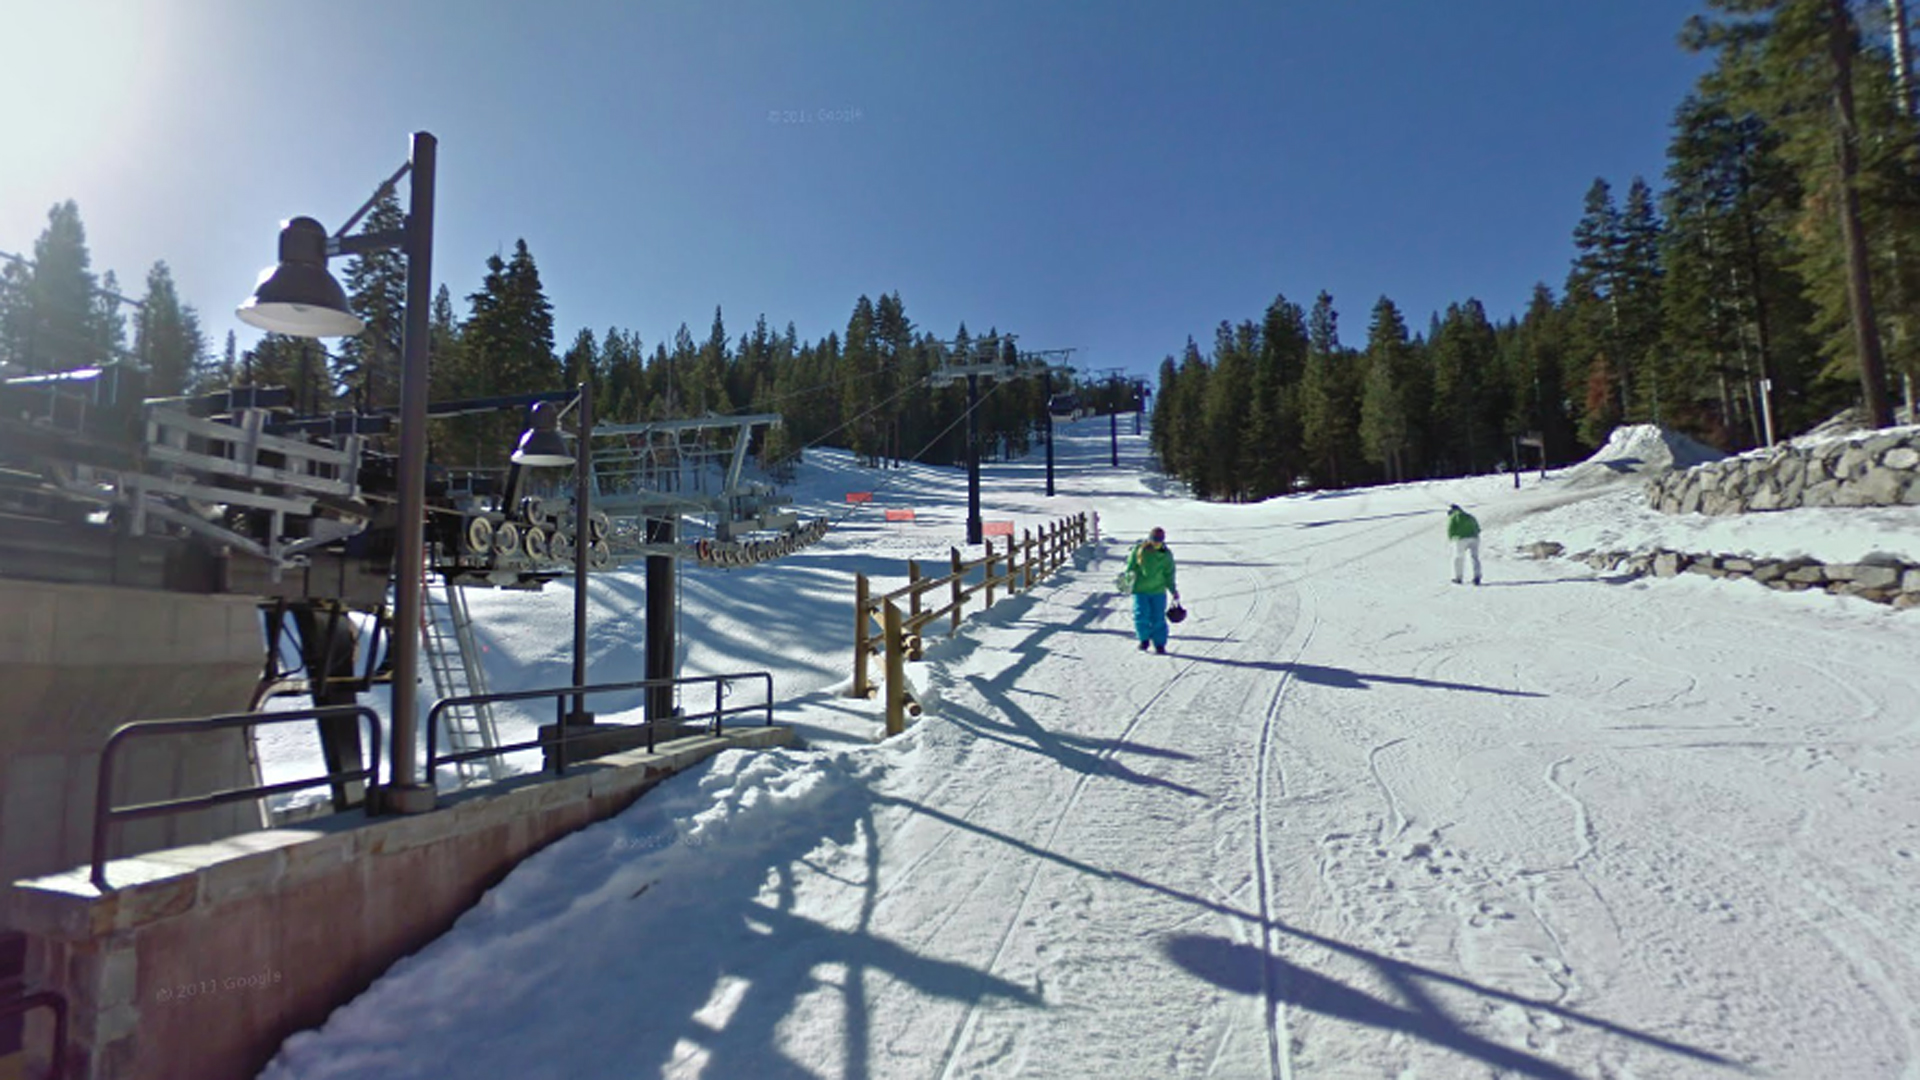 Northstar resort is seen in a photo from Google Maps.